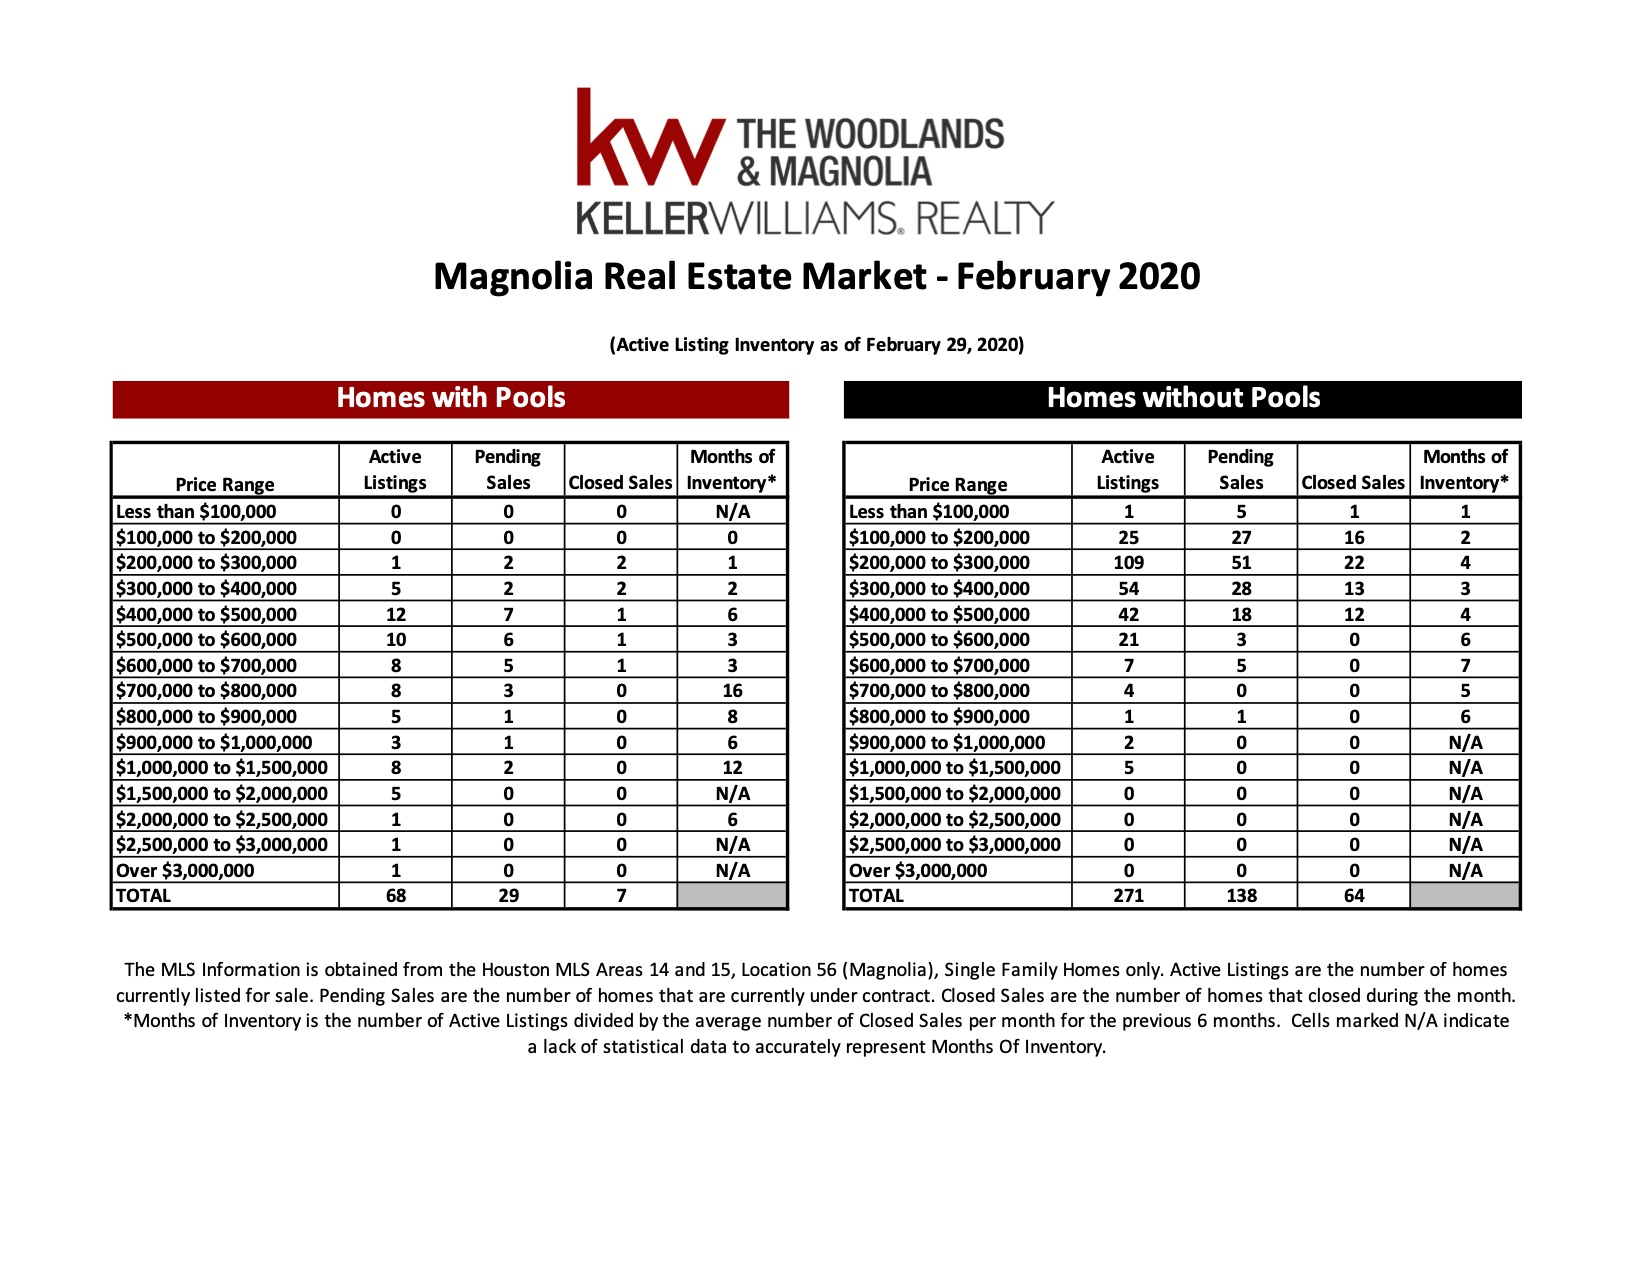 , February 2020 MarketWatch Report – Magnolia, KW Woodlands